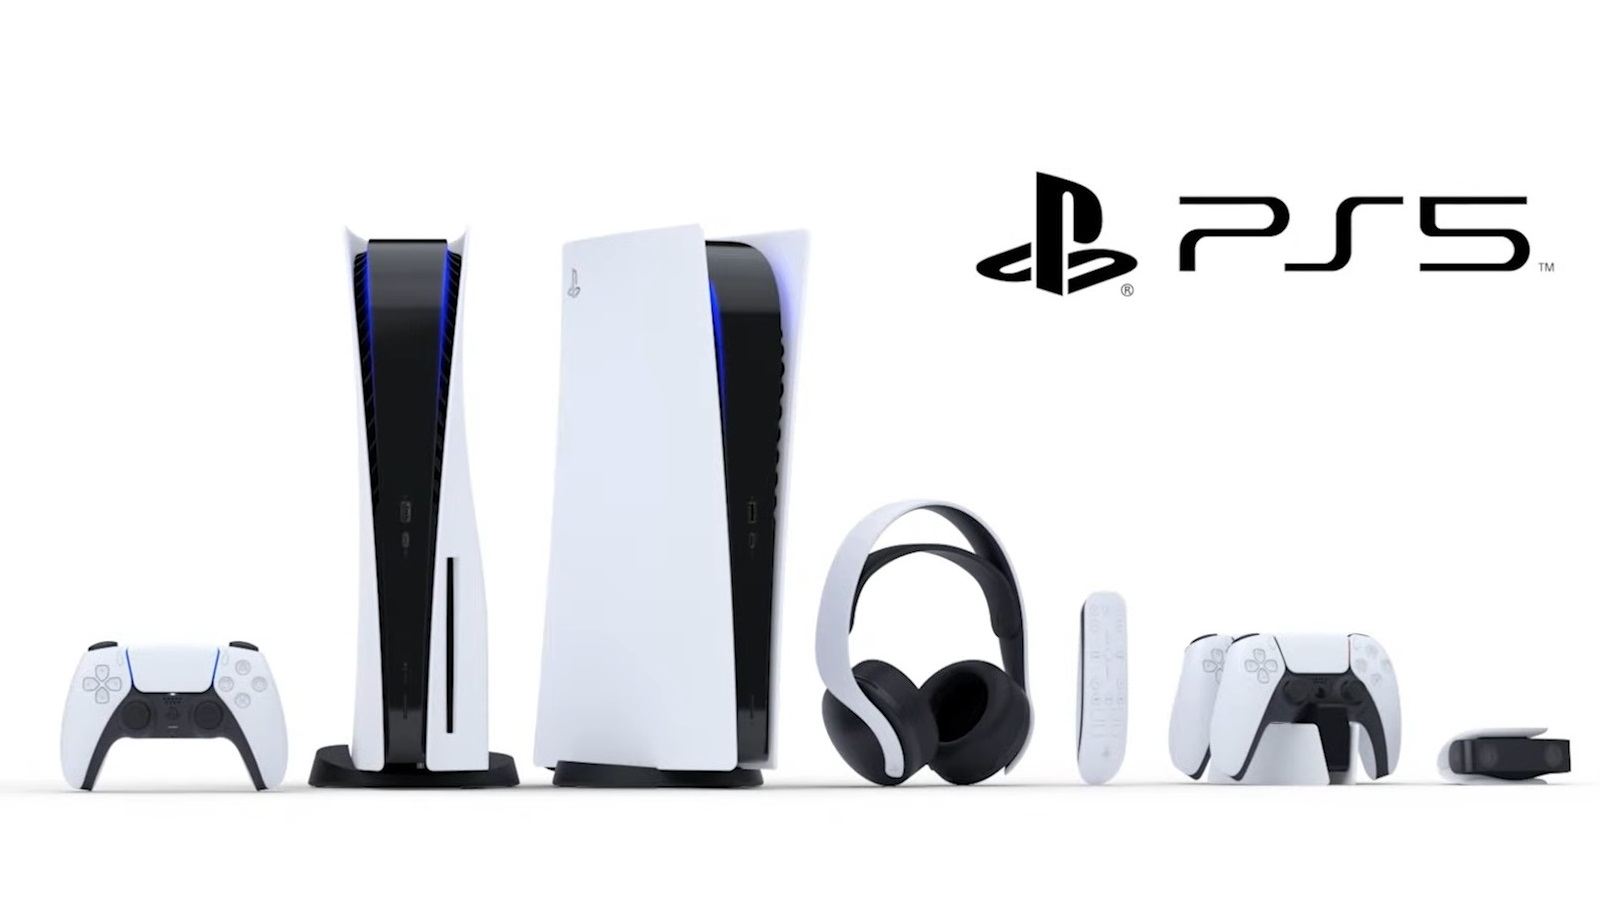 The PlayStation 5 amongst various peripherals like controllers and headsets.